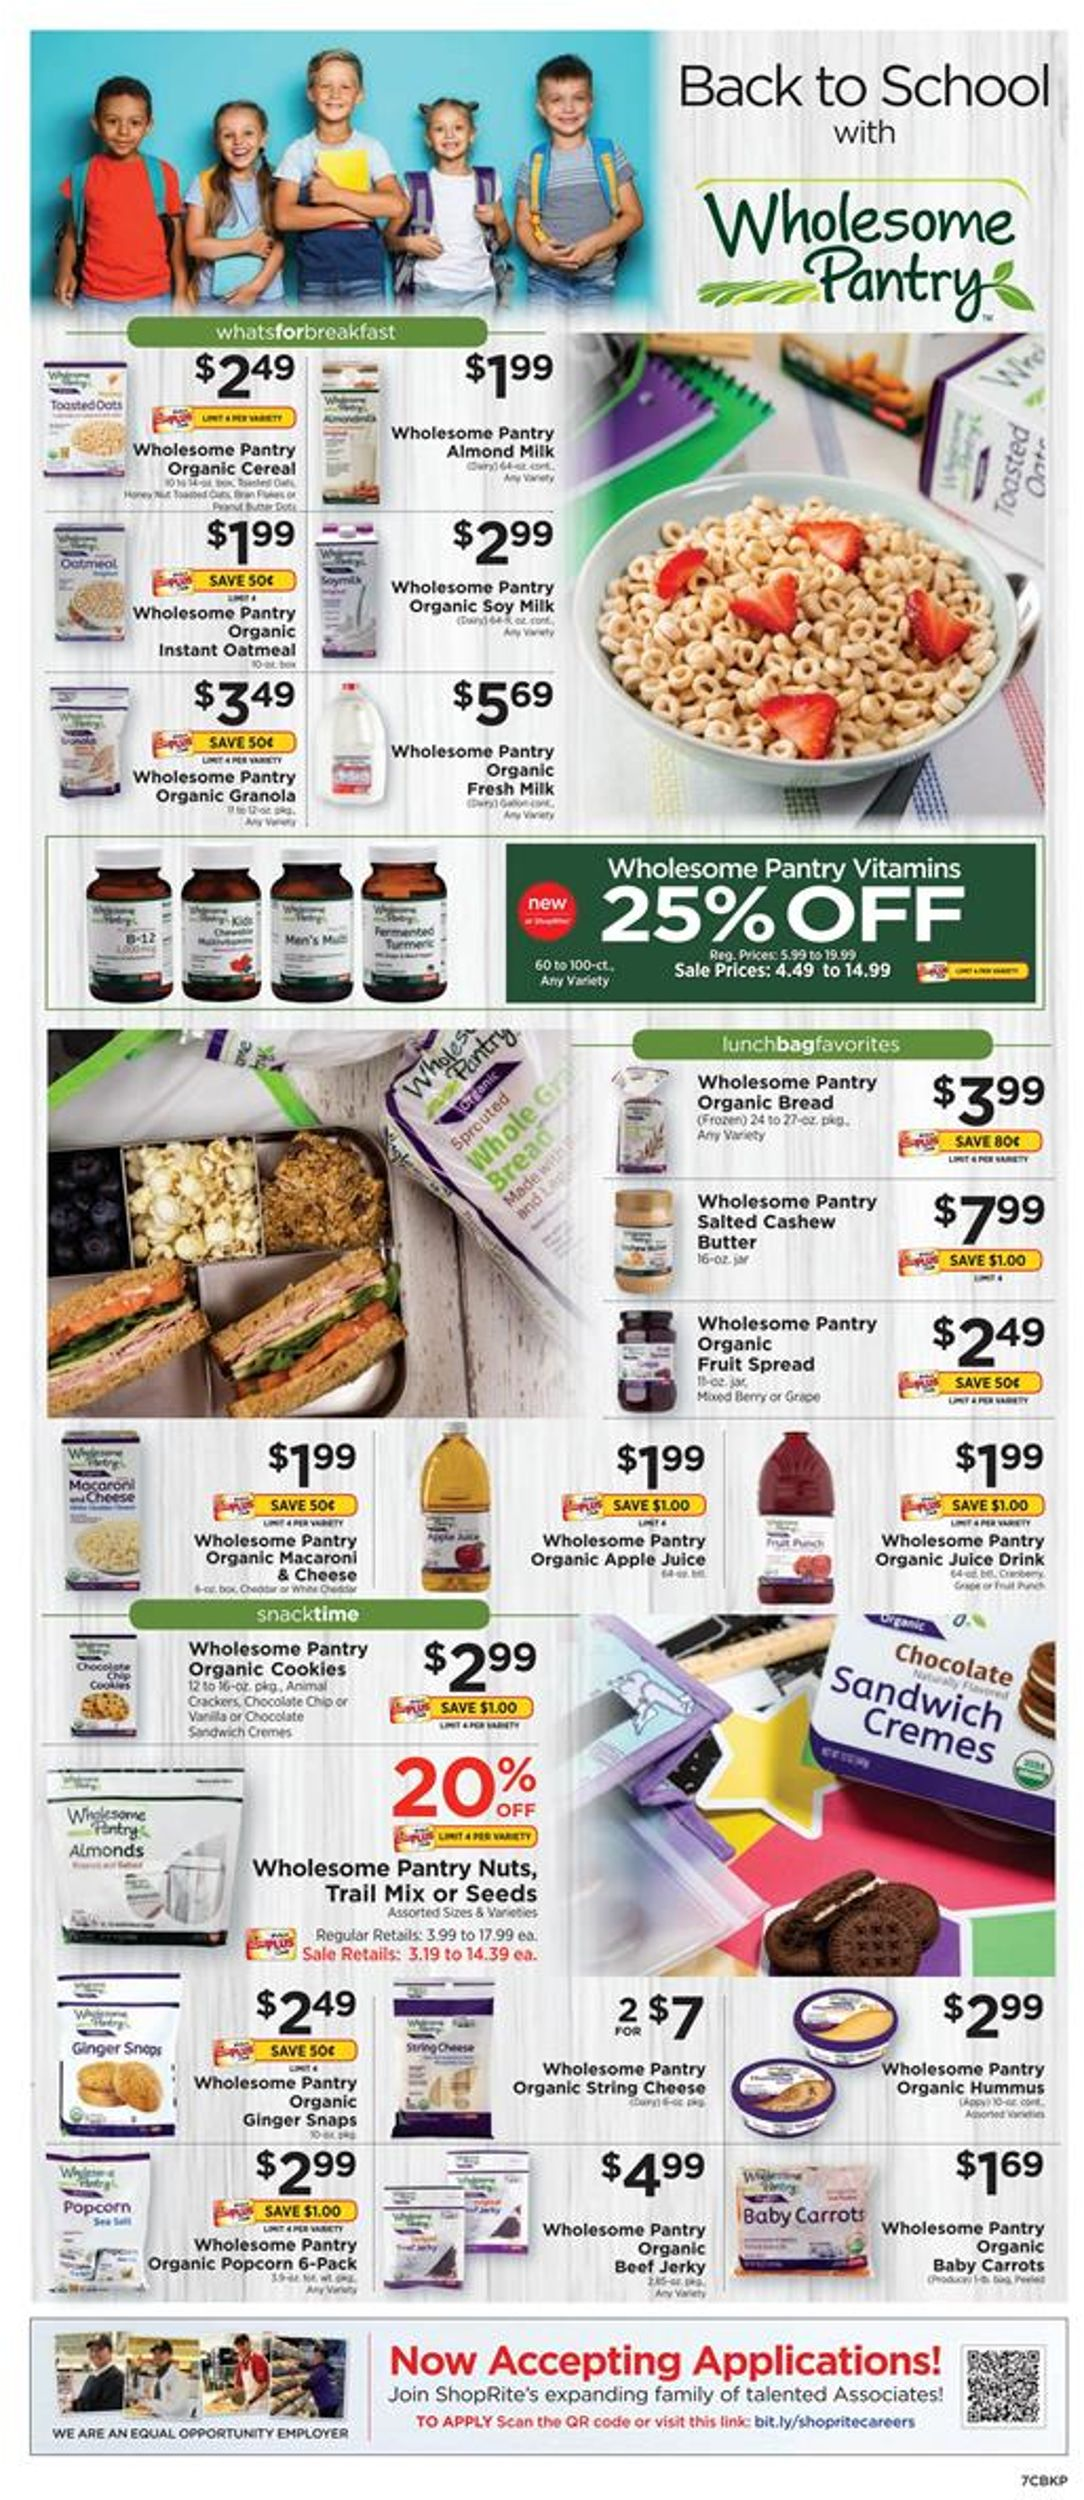 ShopRite Current weekly ad 08/18 - 08/24/2019 [7] - weekly-ad-24.com